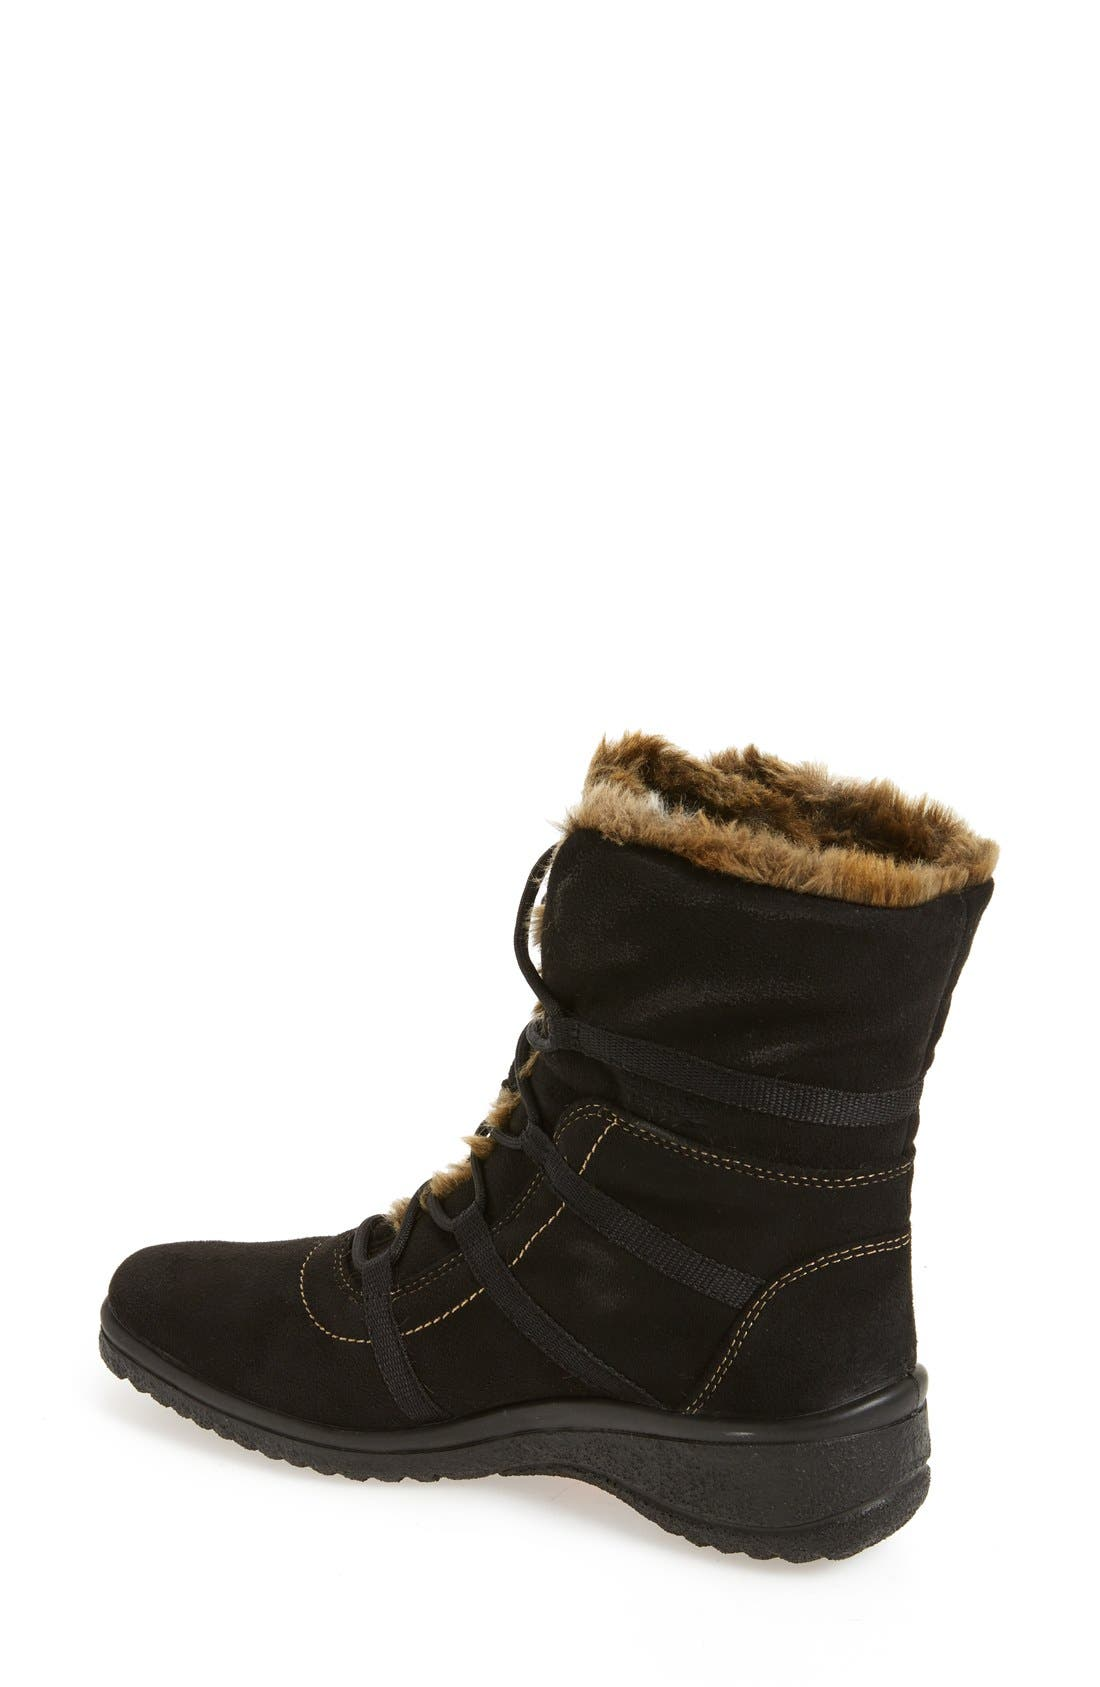 'Magaly' Waterproof Gore-Tex<sup>®</sup> Faux Fur Boot,                             Alternate thumbnail 4, color,                             BLACK FABRIC